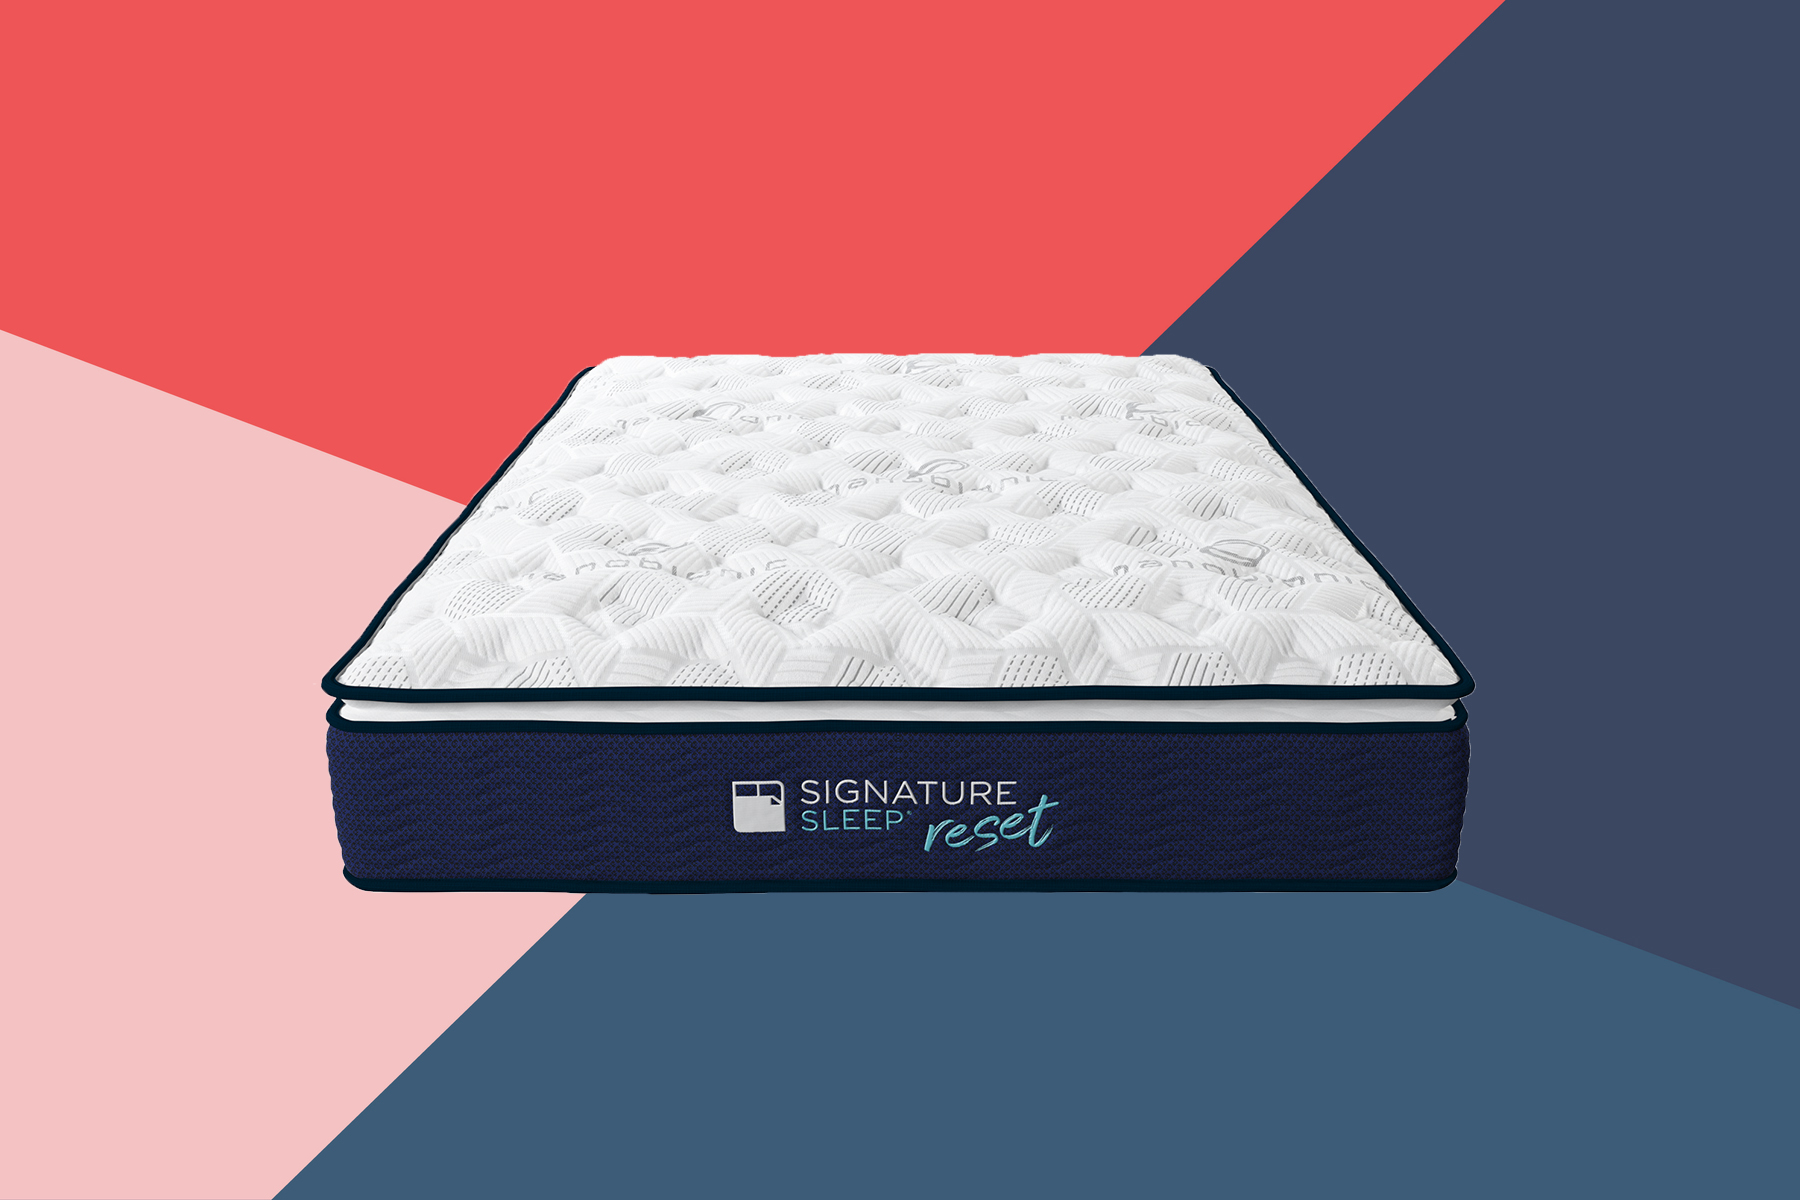 Enhance Your Sleep With These 7 Insanely Good Presidents' Day Mattress Sales